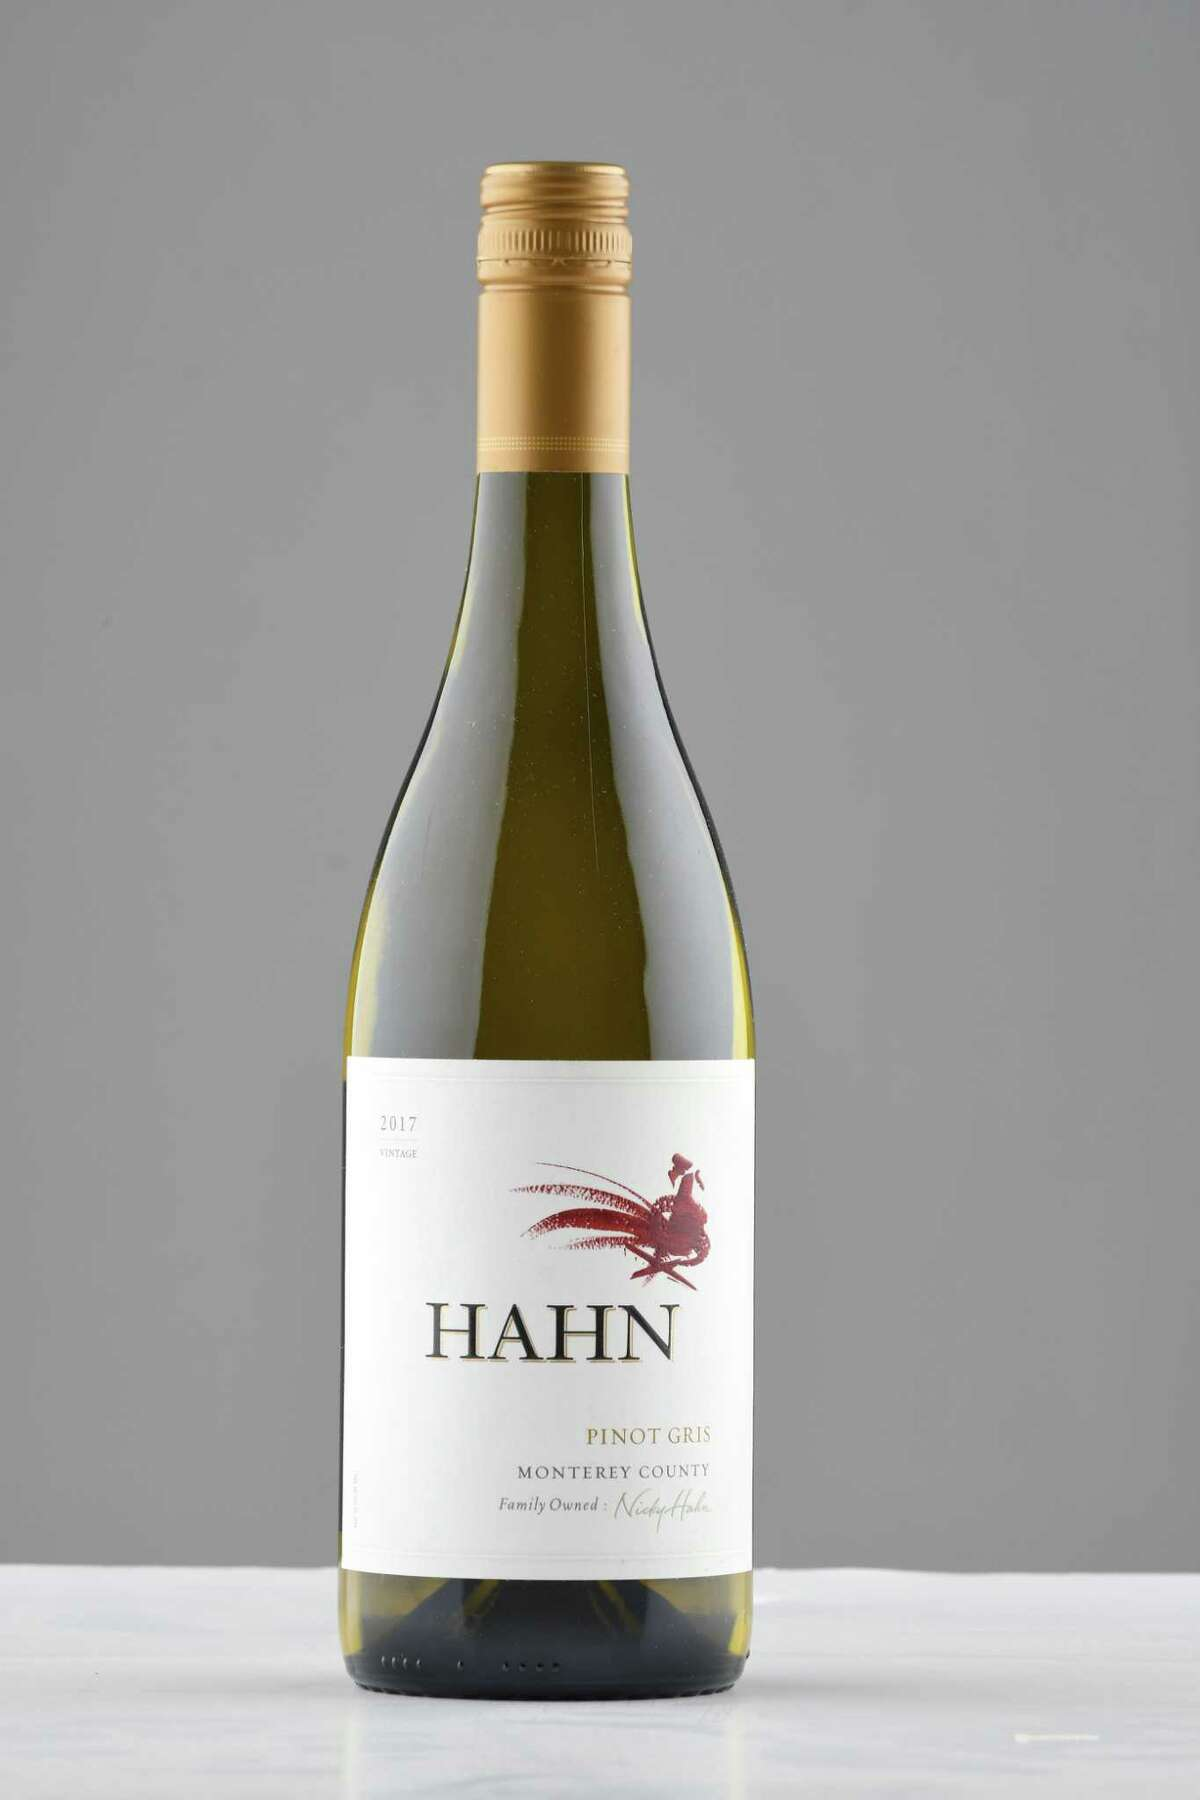 Hahn pinot gris on Tuesday, Dec. 4, 2018, at the Times Union in Colonie, N.Y. (Will Waldron/Times Union)